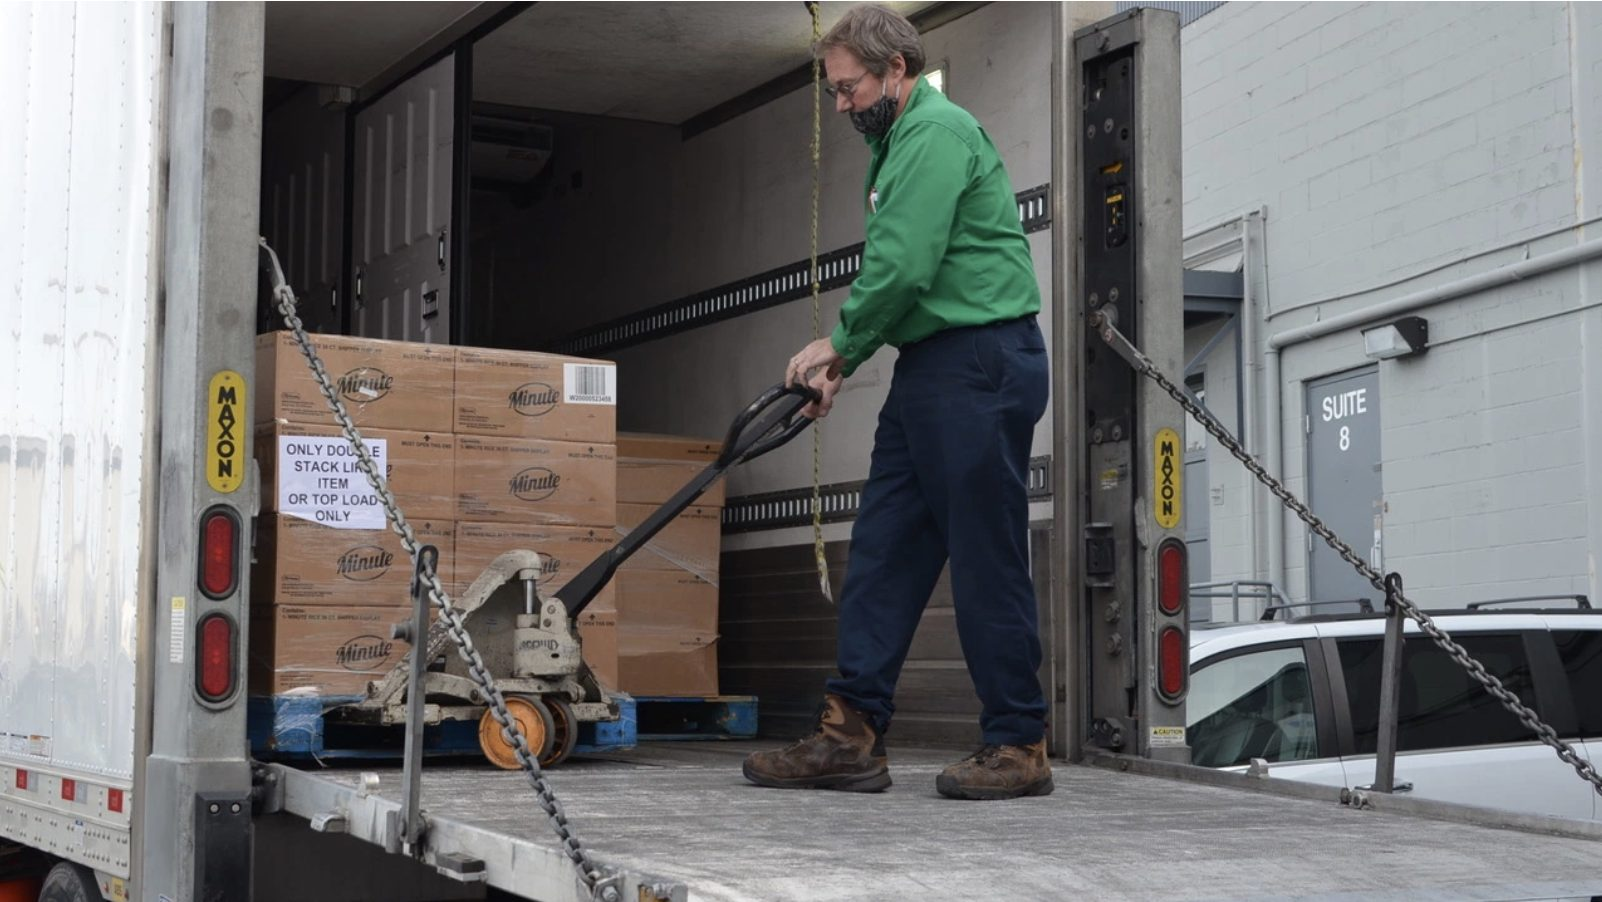 Thousands of pounds of food donated to aid fight against child hunger in Frederick County